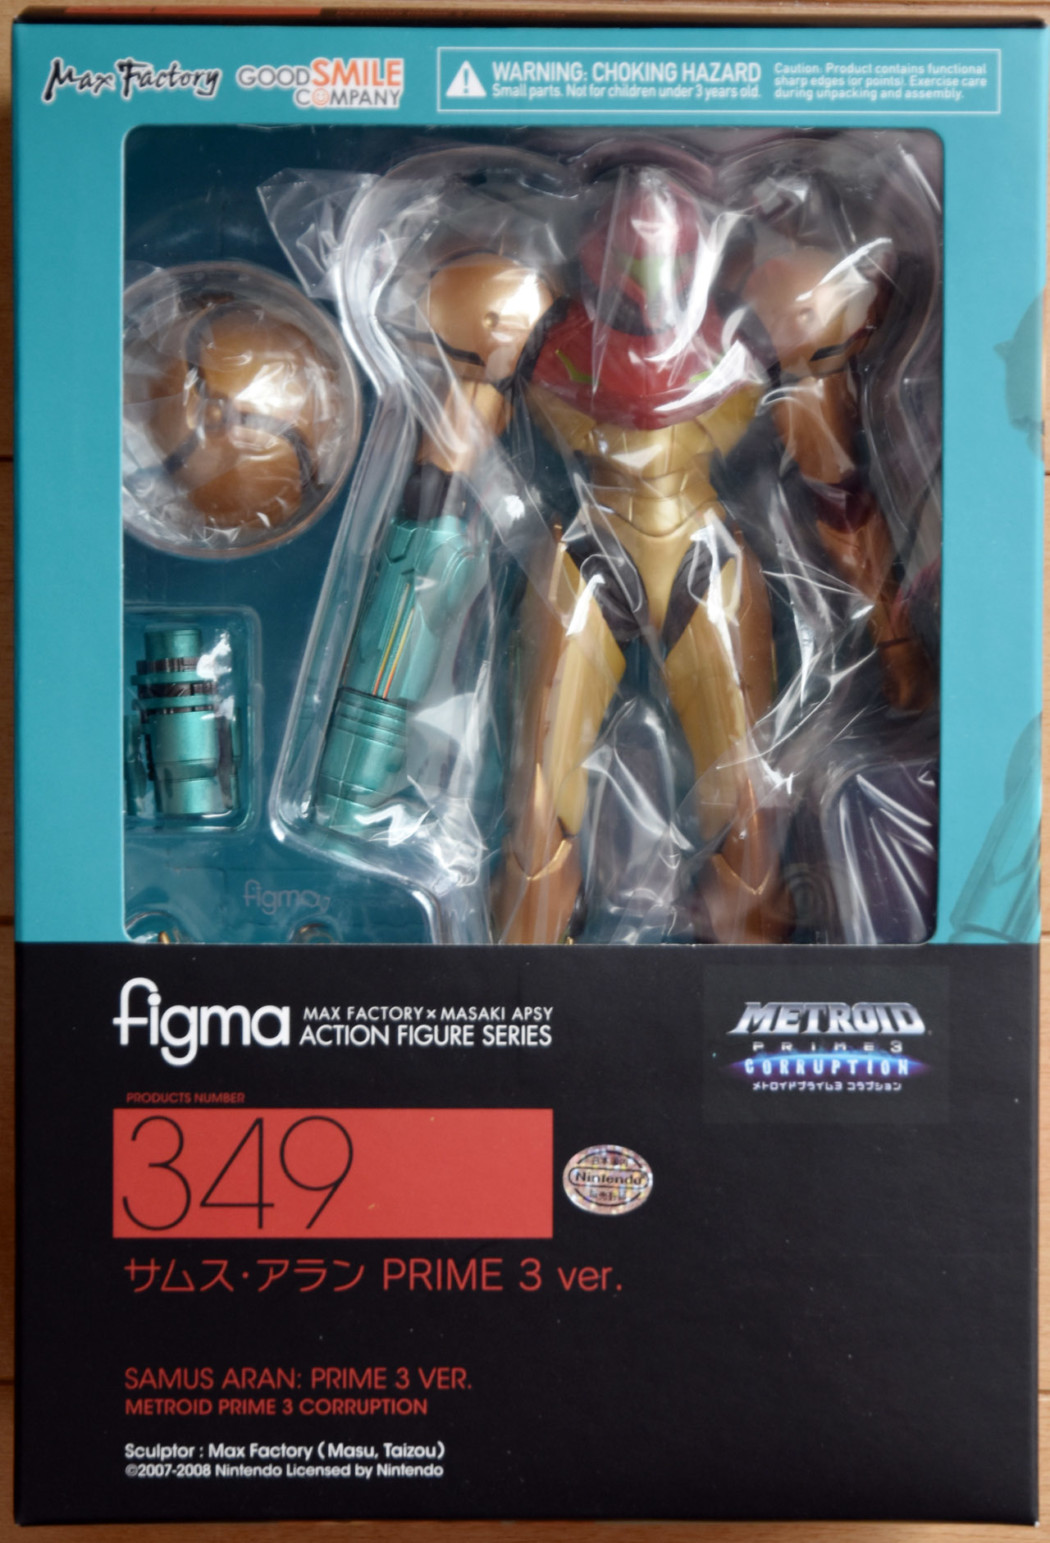 figma Samus Aran: PRIME 3 ver. by Good Smile Company (Part 1: Unbox)